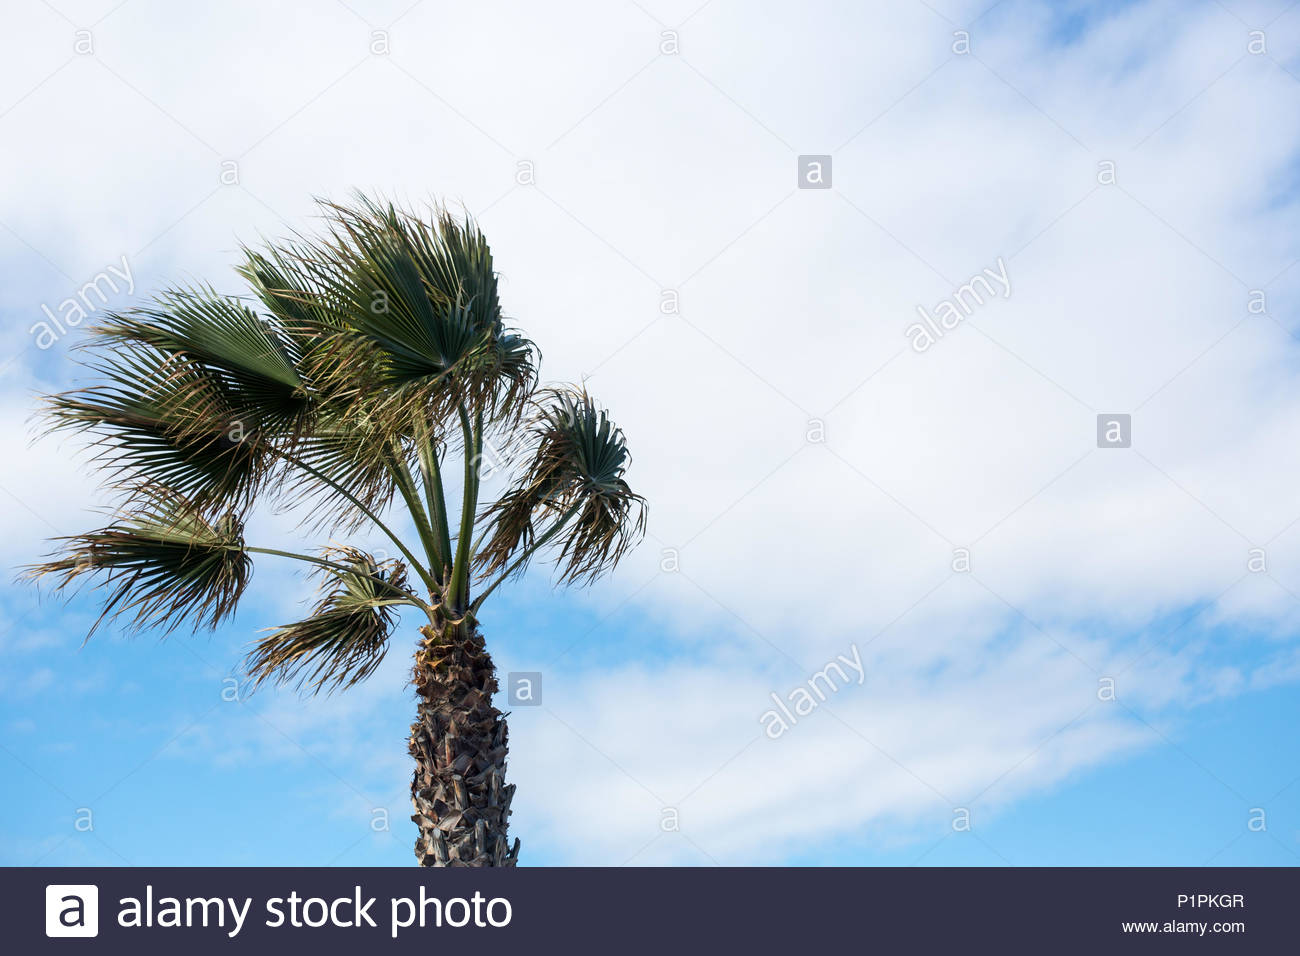 palm tree in a windy day - Stock Image